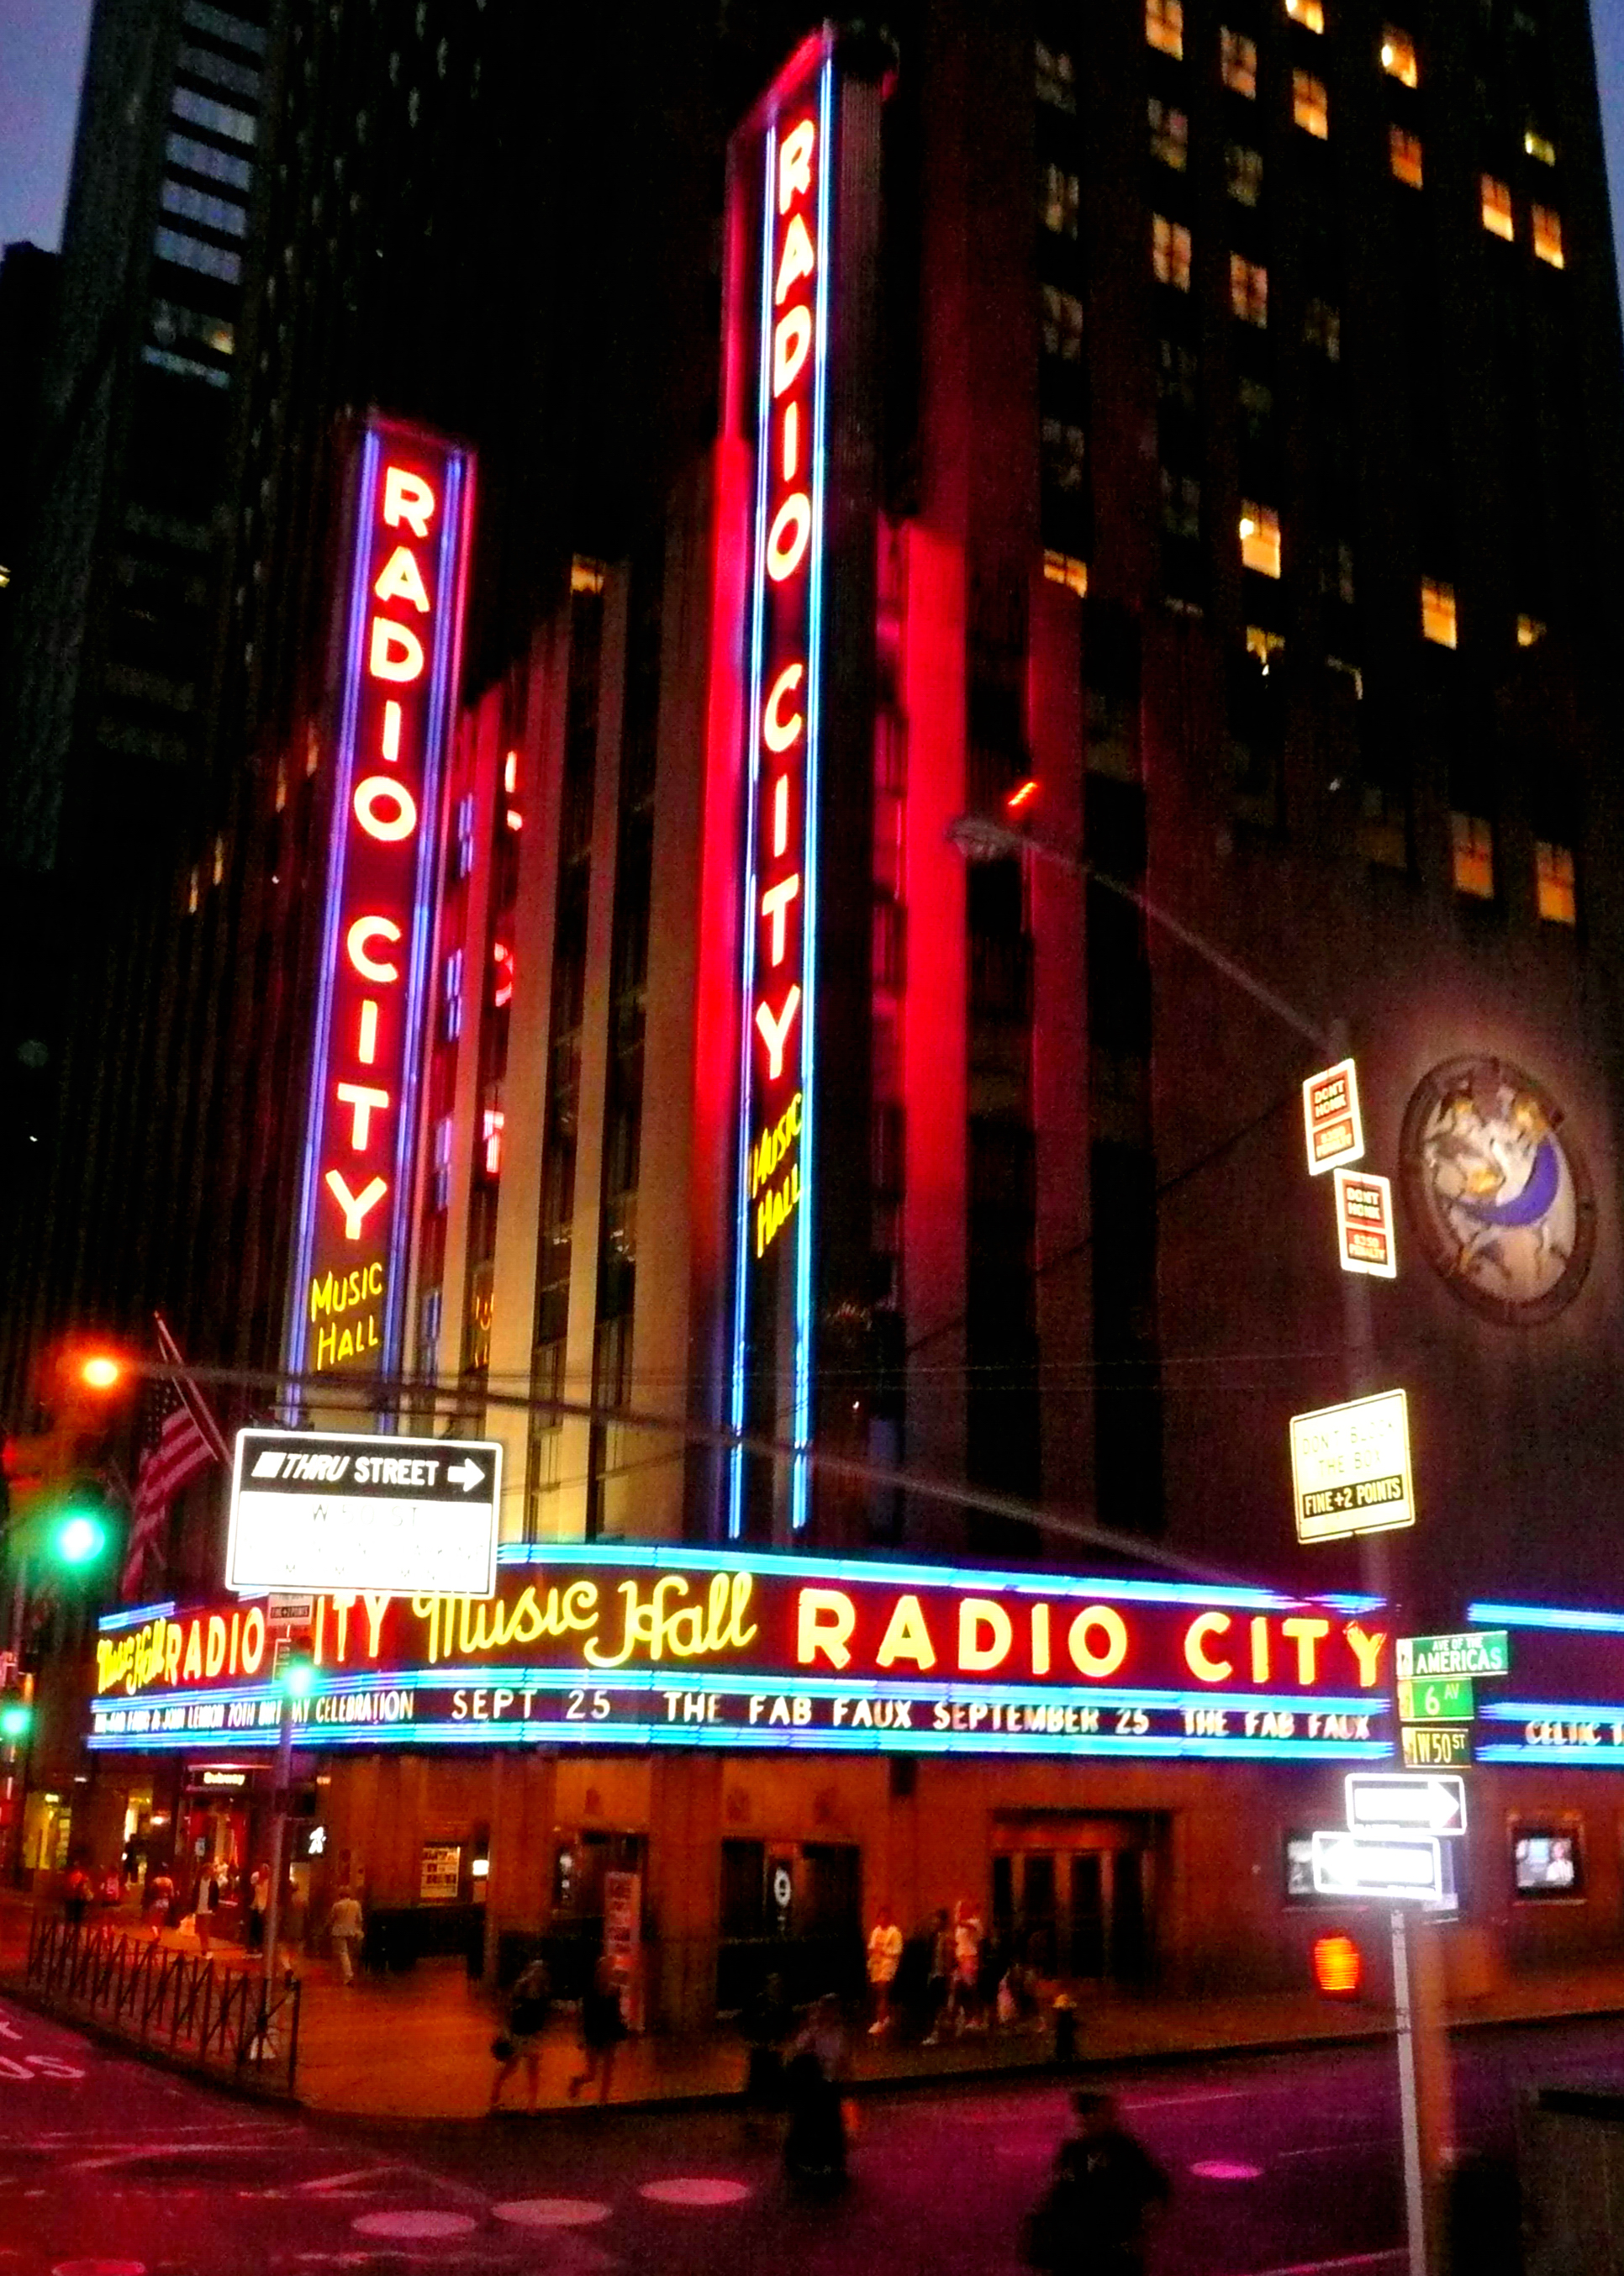 the history of the radio city music hall Image of radio city music hall designed by edward durell stone in 1932.